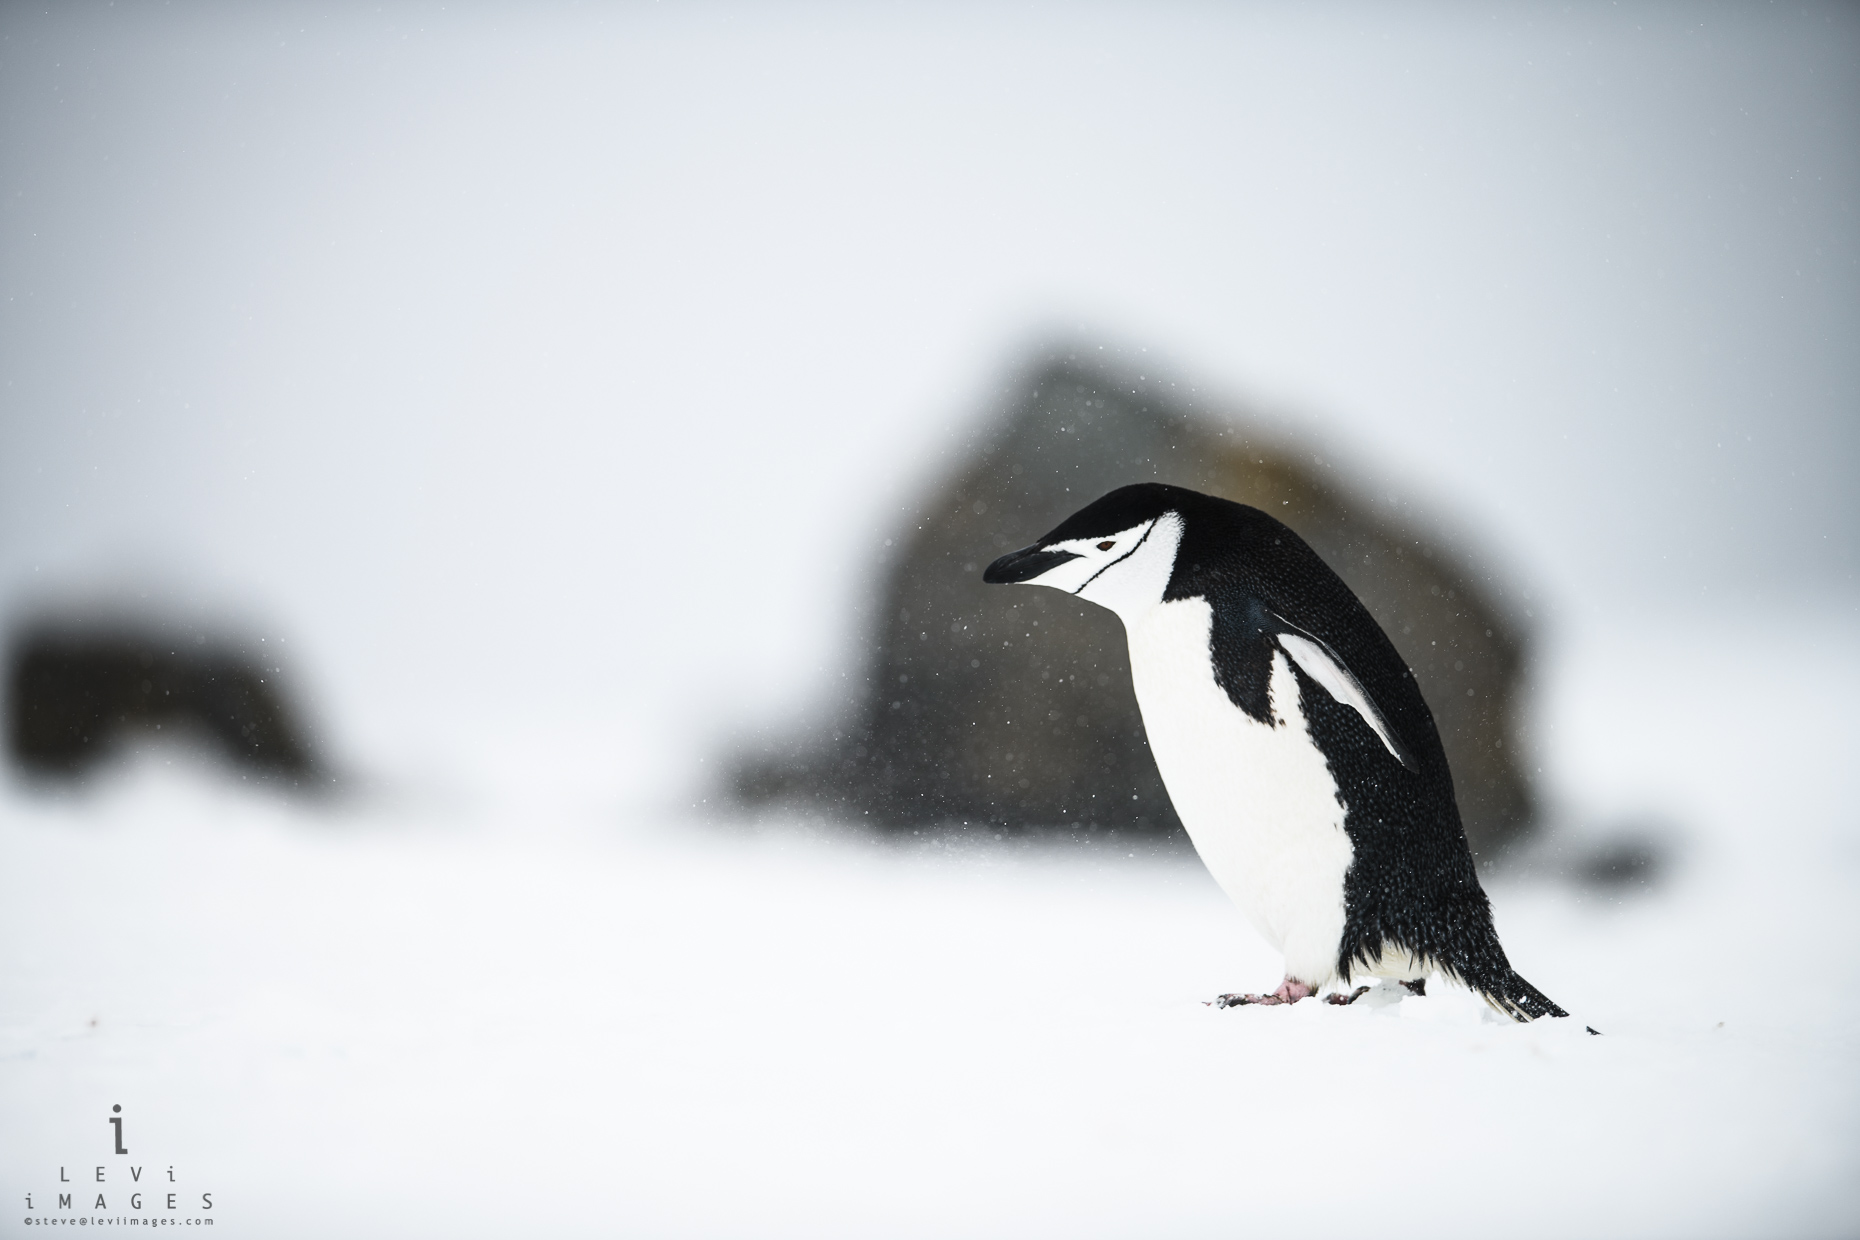 Chinstrap penguin (Pygoscelis antarcticus) walking through light snow storm. Penguin island, Antarctica